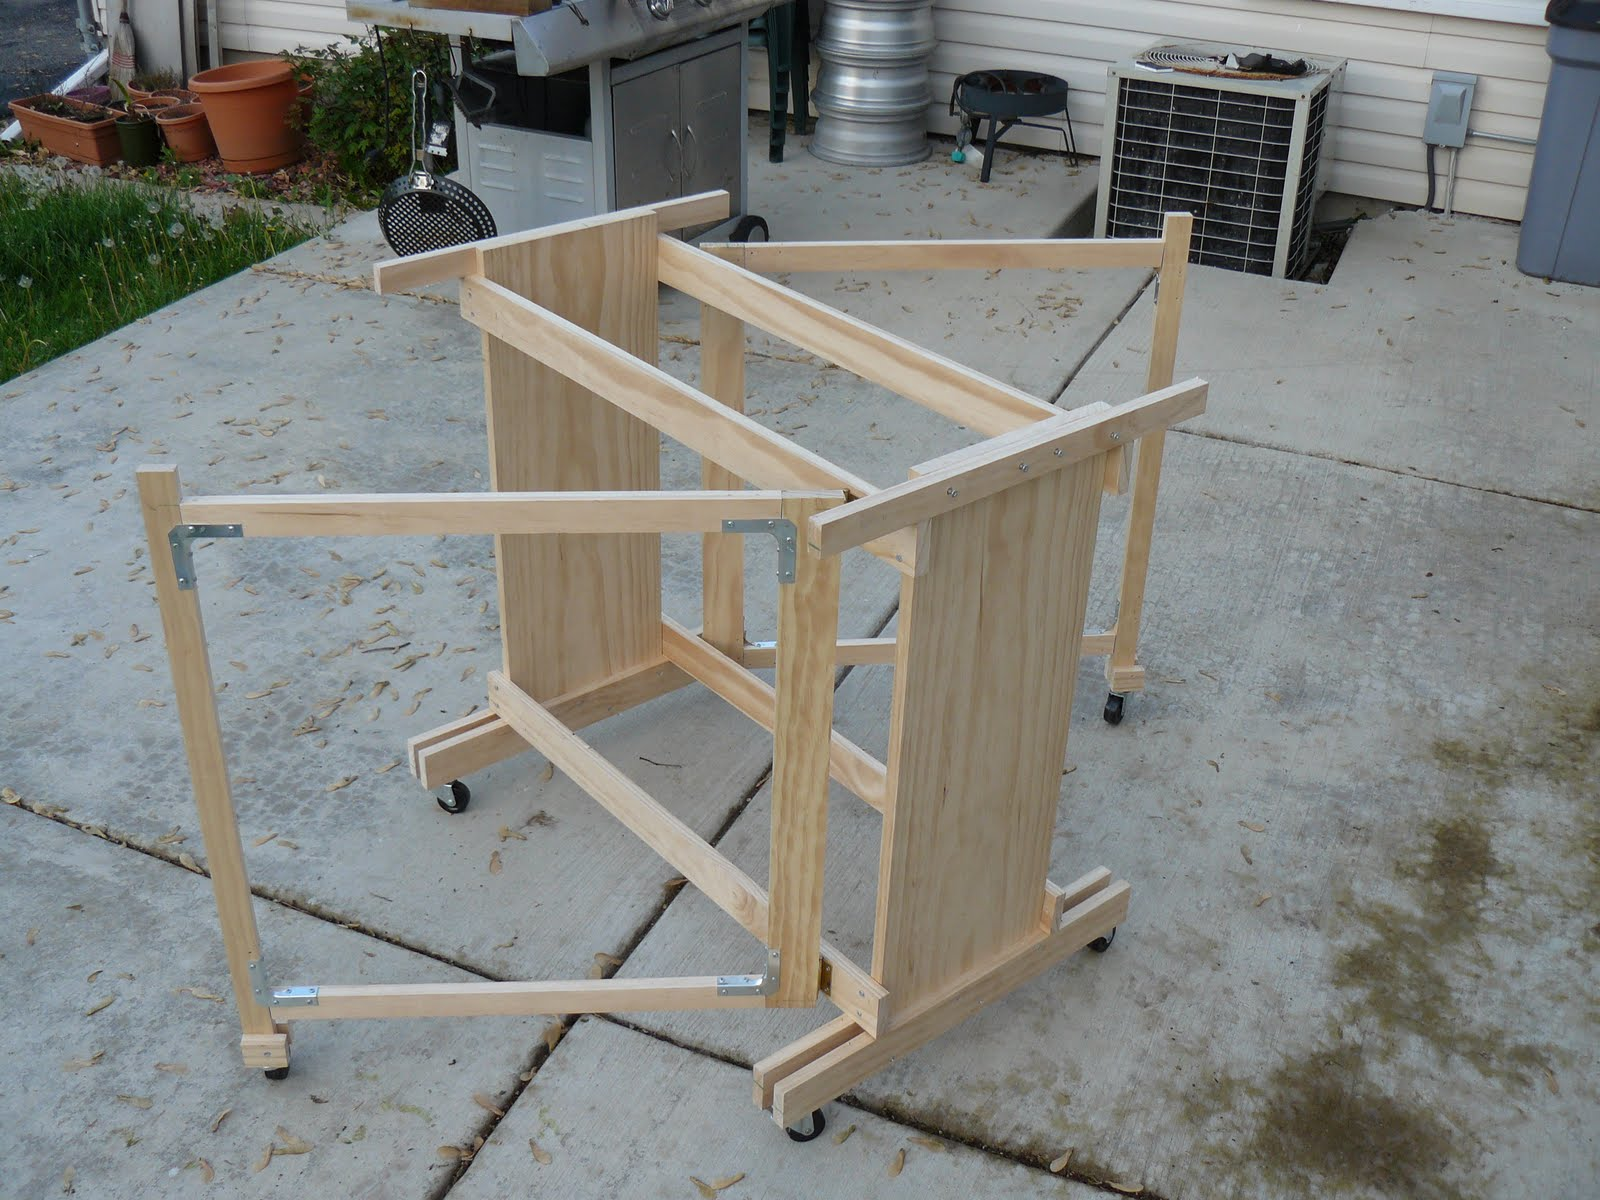 The gamer 39 s workbench fold away table part 2 the base - Fold away table ...